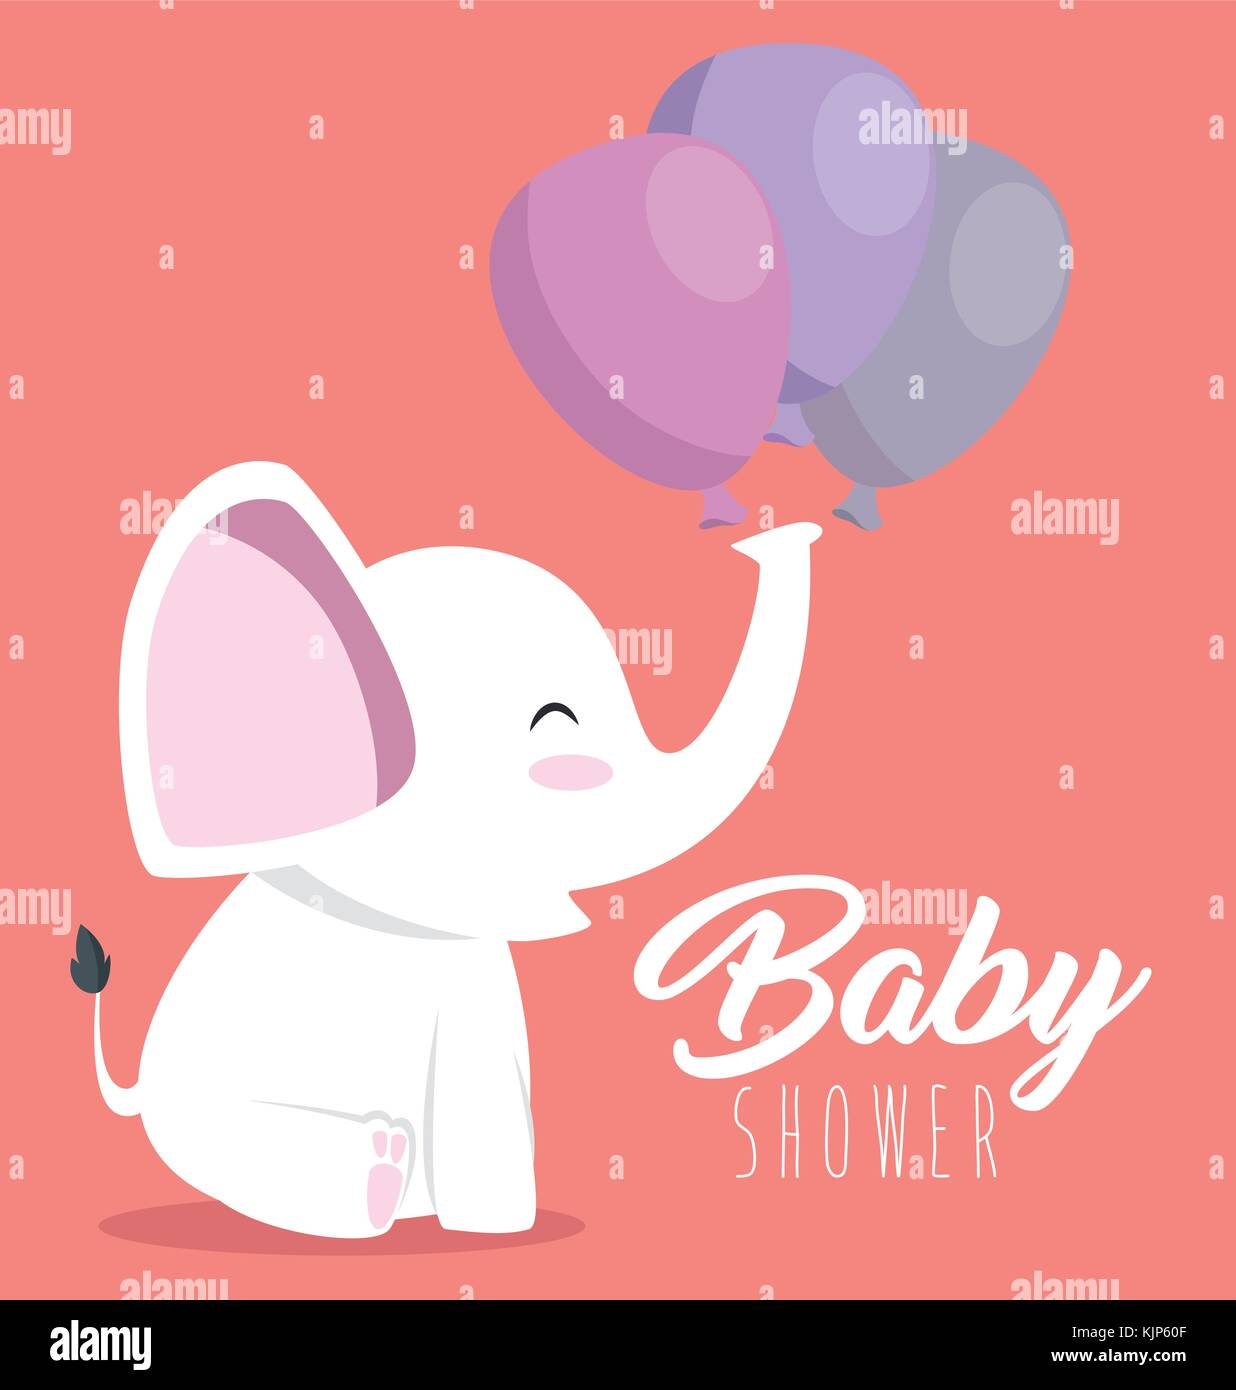 Baby shower greeting card with a cute elephant vector illustration baby shower greeting card with a cute elephant vector illustration graphic design m4hsunfo